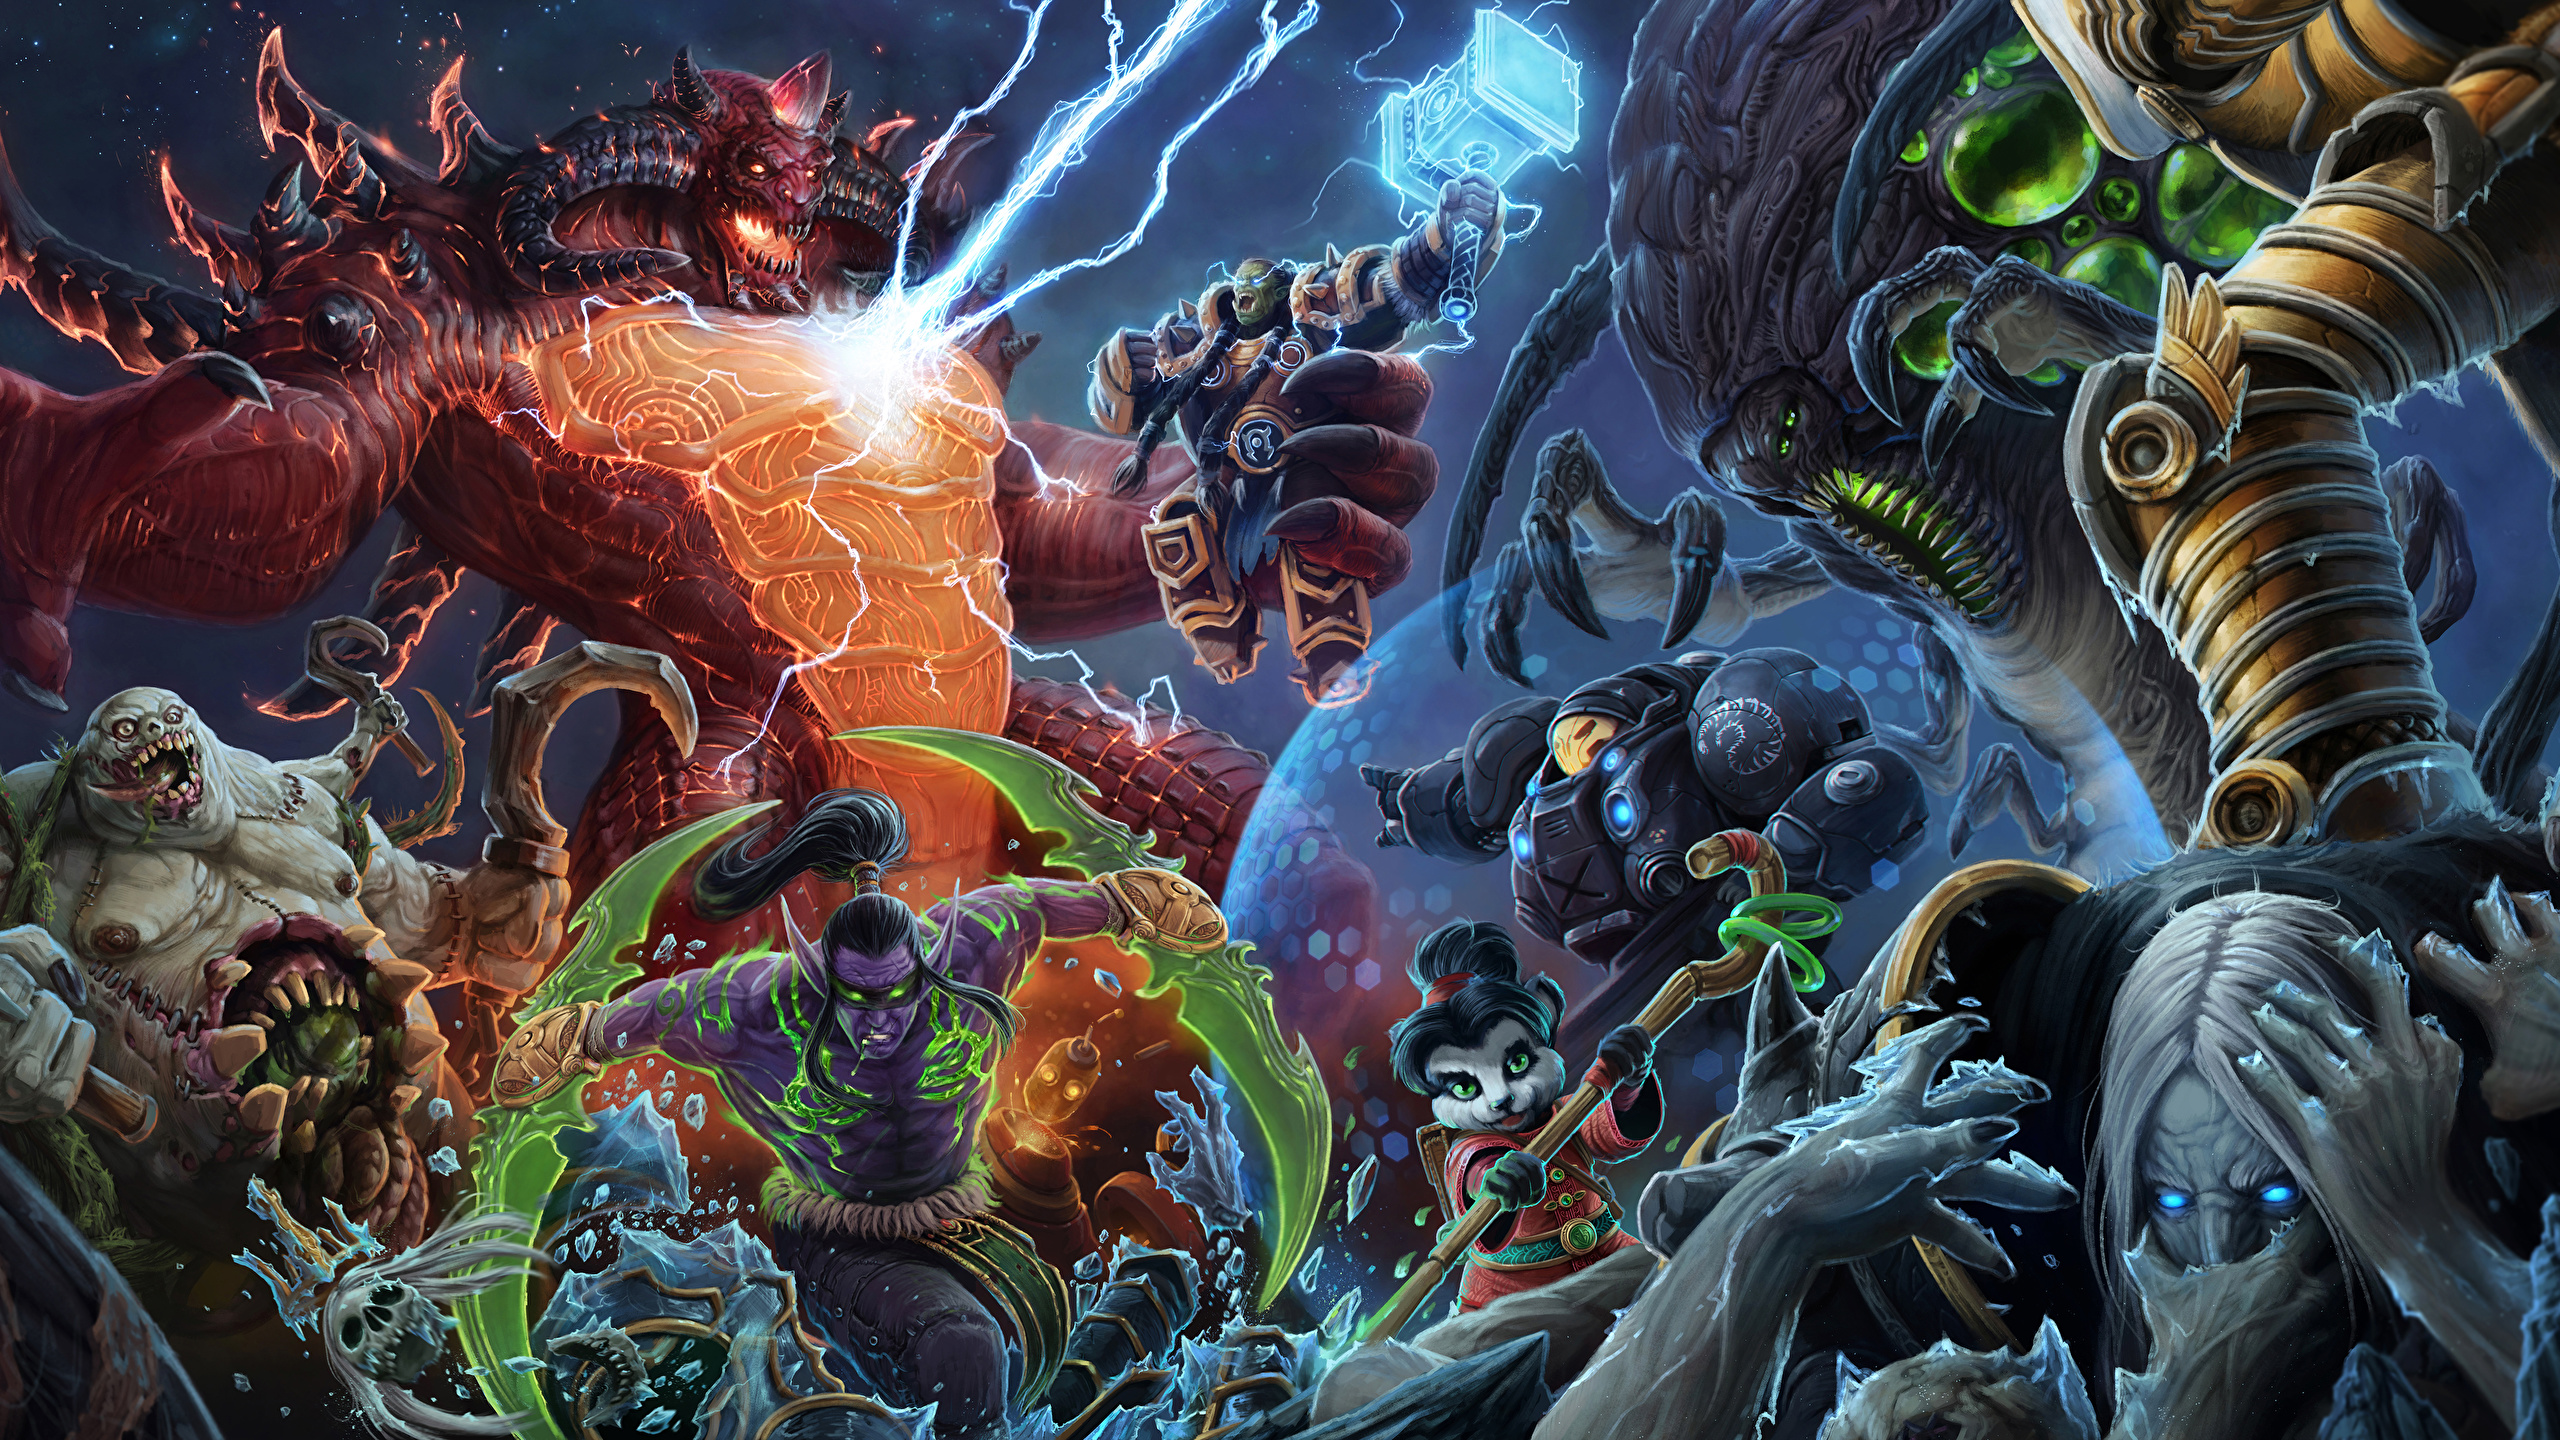 Pictures WoW Diablo StarCraft Heroes of the Storm Warriors x